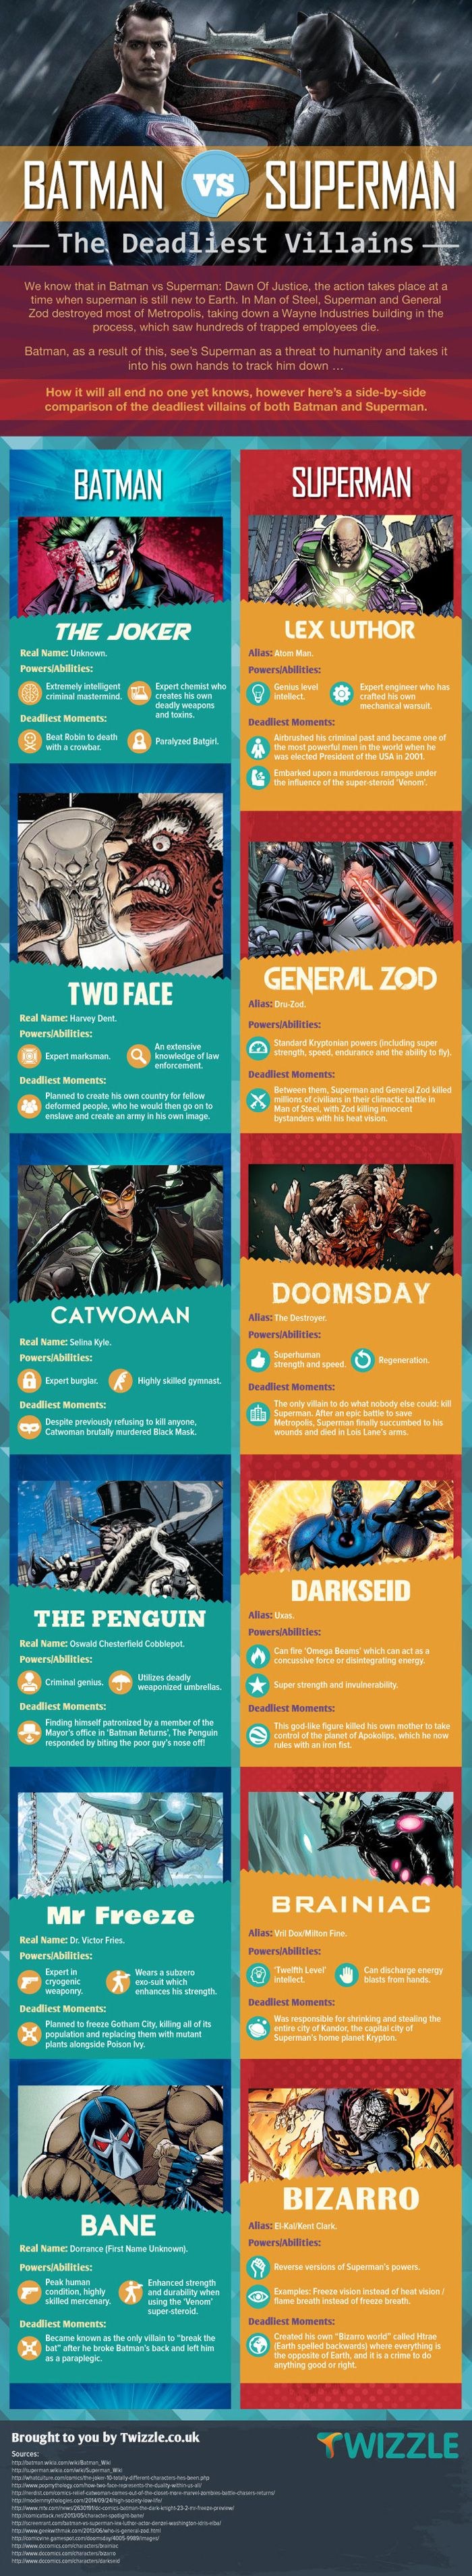 Batman vs Superman: The Deadliest Villains [Infographic] http://geekxgirls.com/article.php?ID=6732